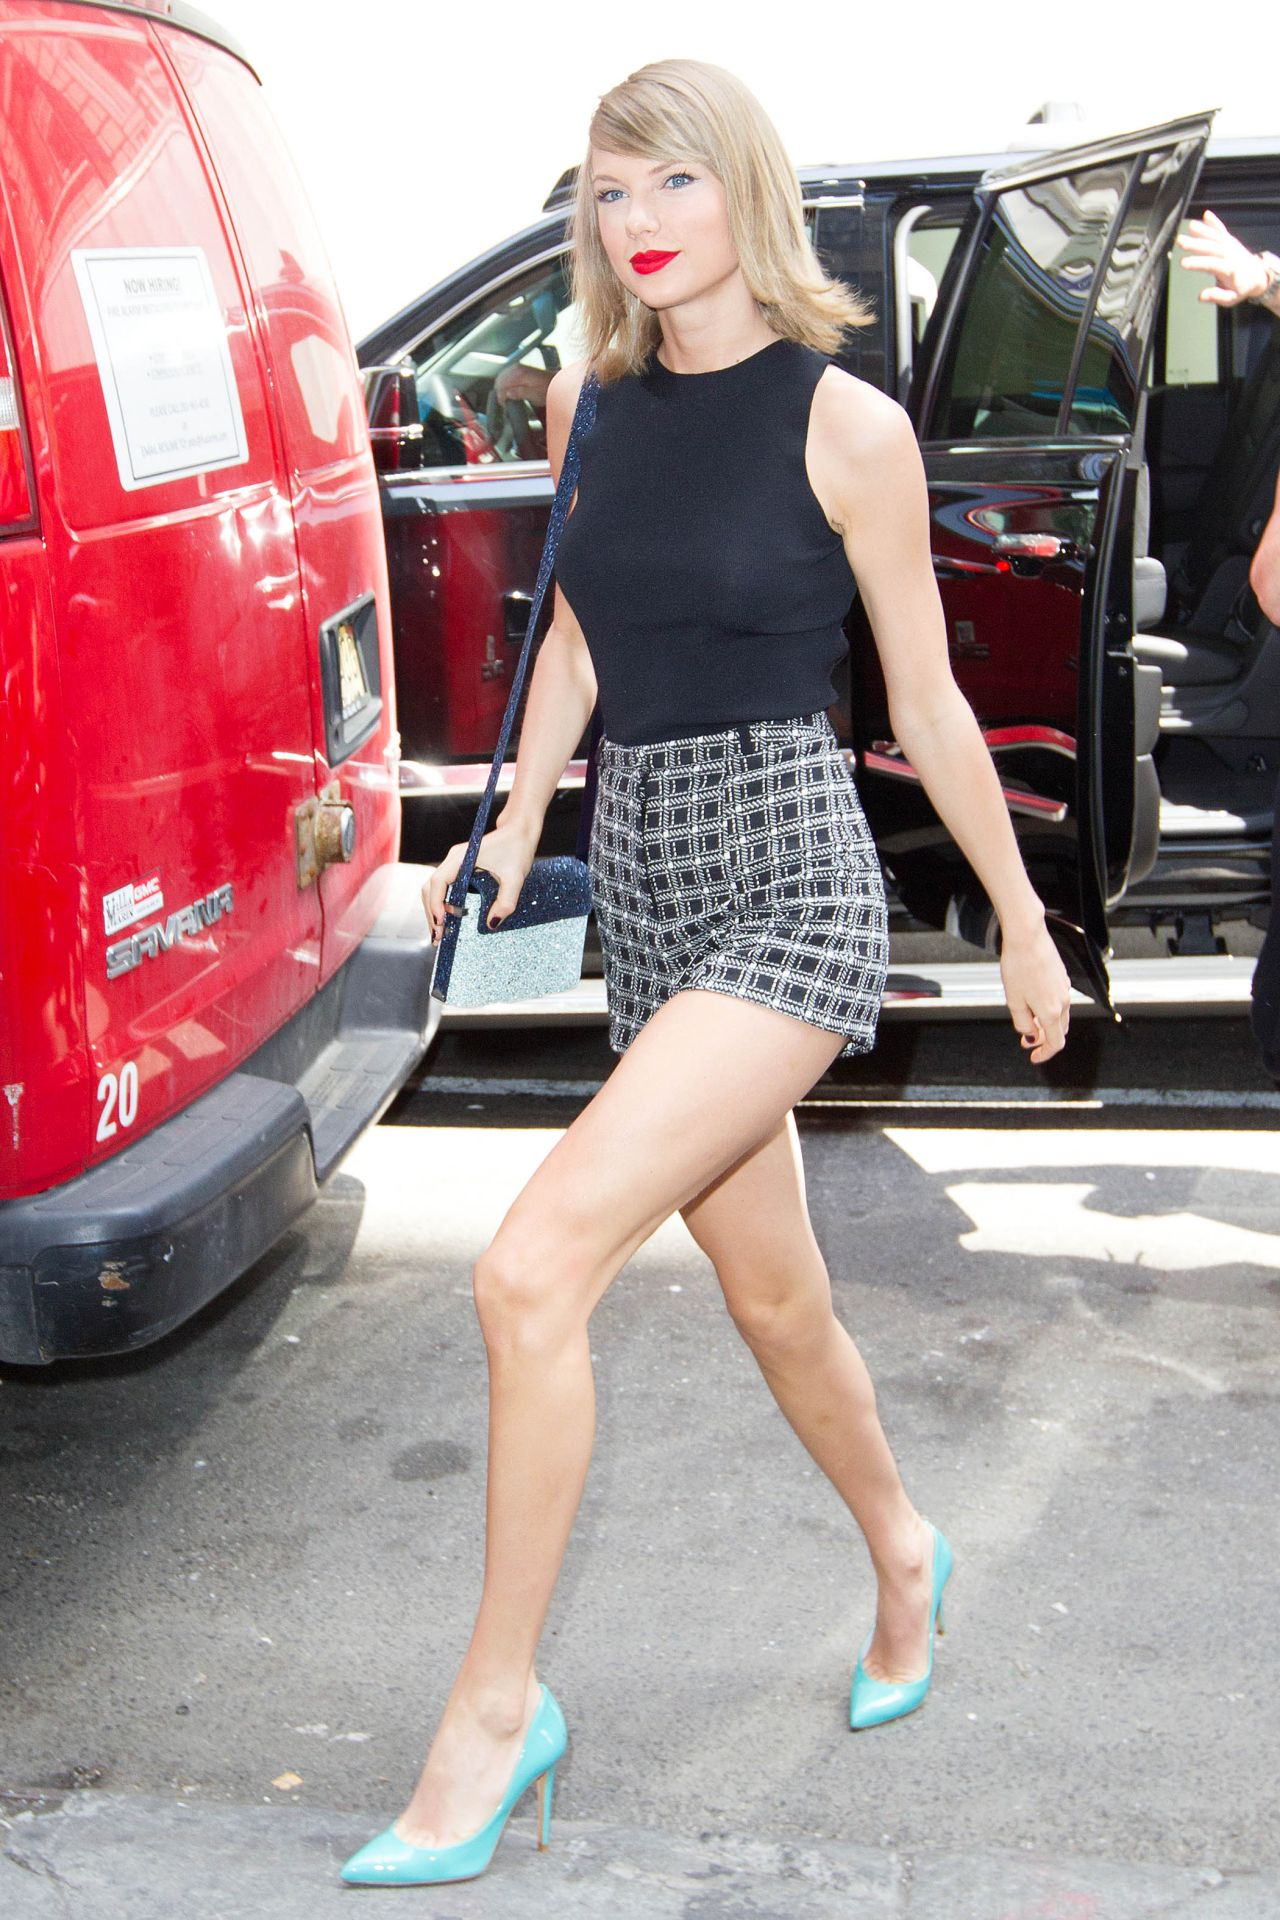 New York Taylor Swift Legs